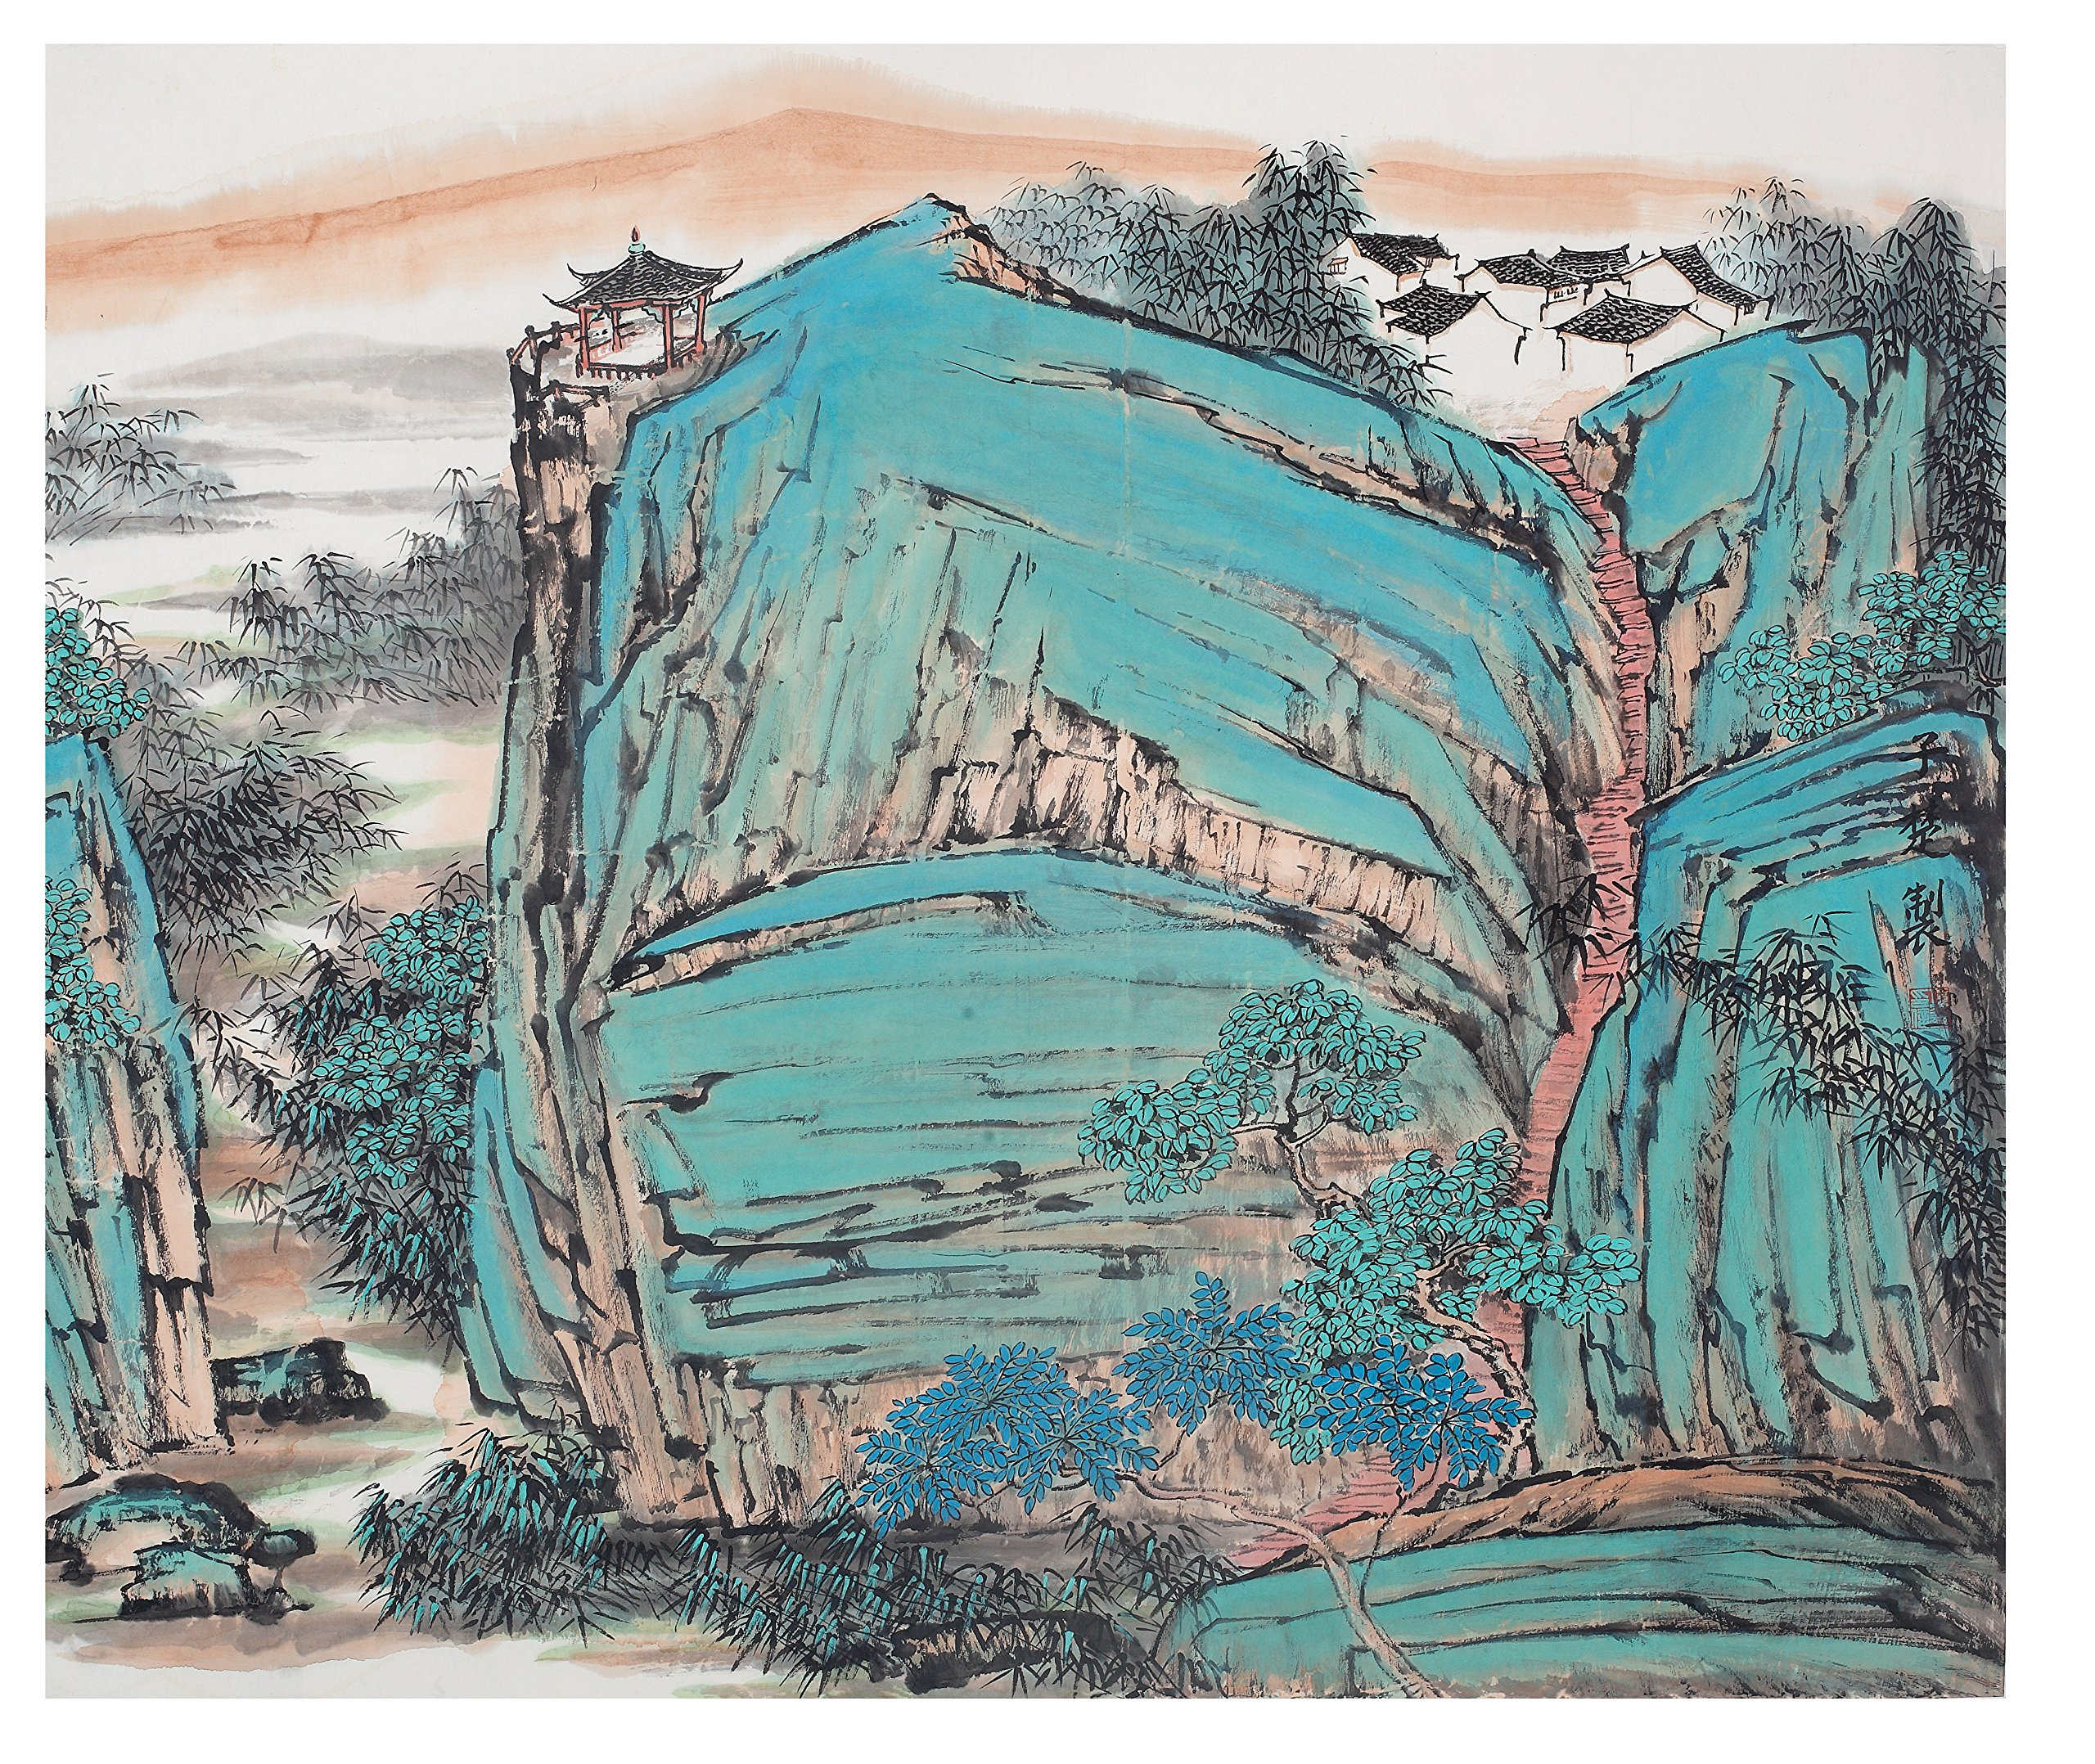 Asian Decor Collection, Original Hand Painted Chinese Landscape-The blue and green landscape painting 59 x 38 inch, For Bedroom Living Room Dorm Wall Decor